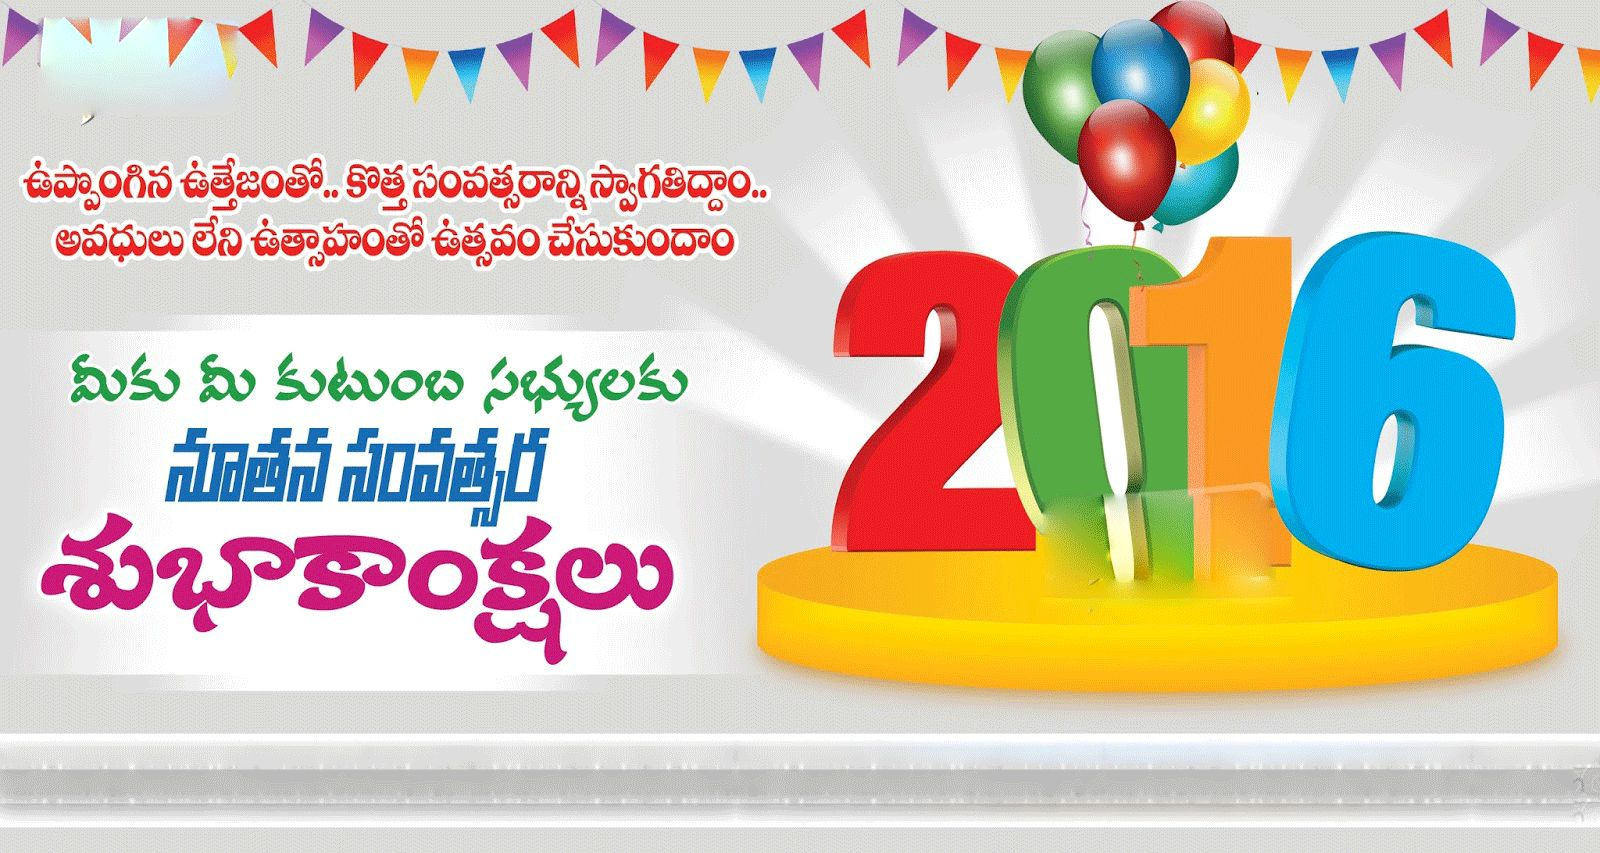 Happy new year 2016 images hd saying quotes wishes sms in telugu happy new year 2016 images hd saying quotes wishes sms in telugu tamil marathi kristyandbryce Gallery